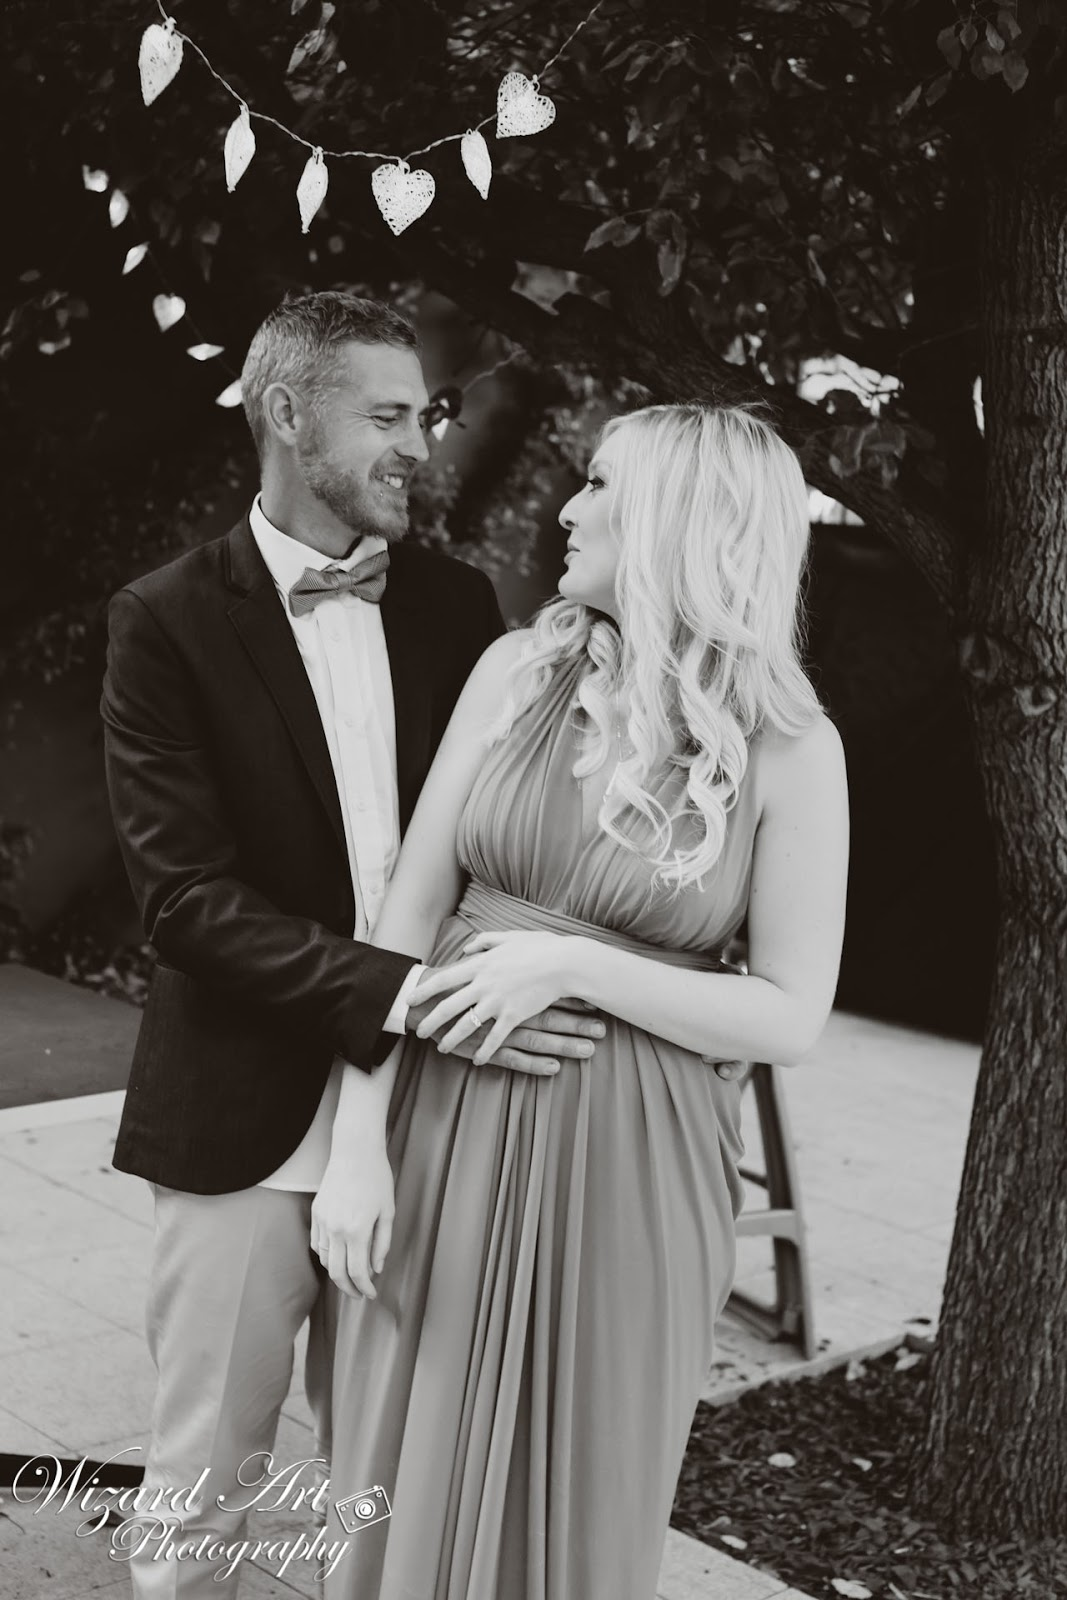 hayley and rowan 39 s engagement party photography by wizard. Black Bedroom Furniture Sets. Home Design Ideas